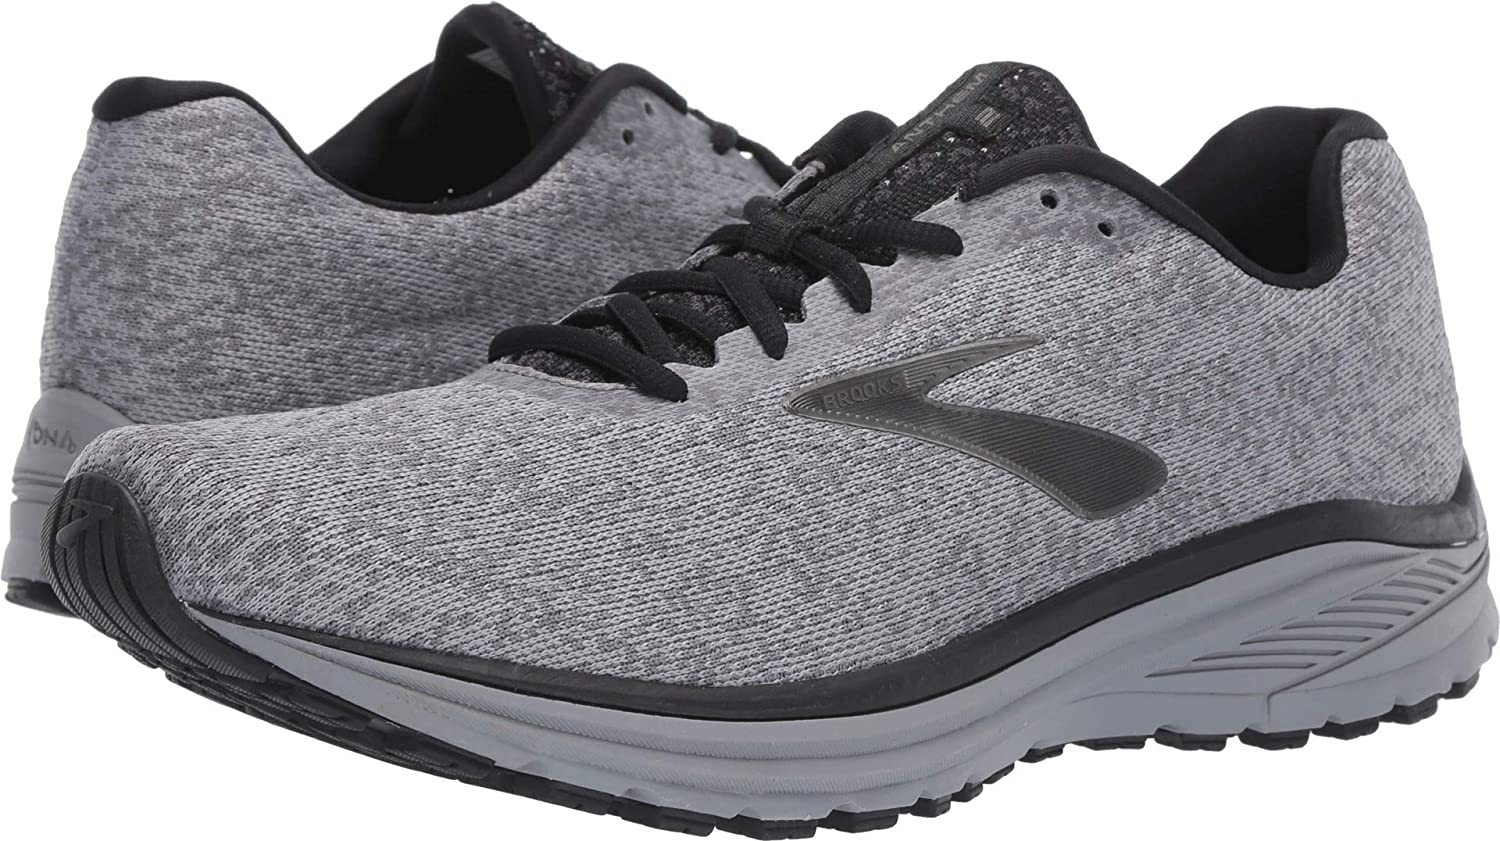 New Balance Women s W560v7 Cushioning Running Shoe, Silver Mink, 7 B US